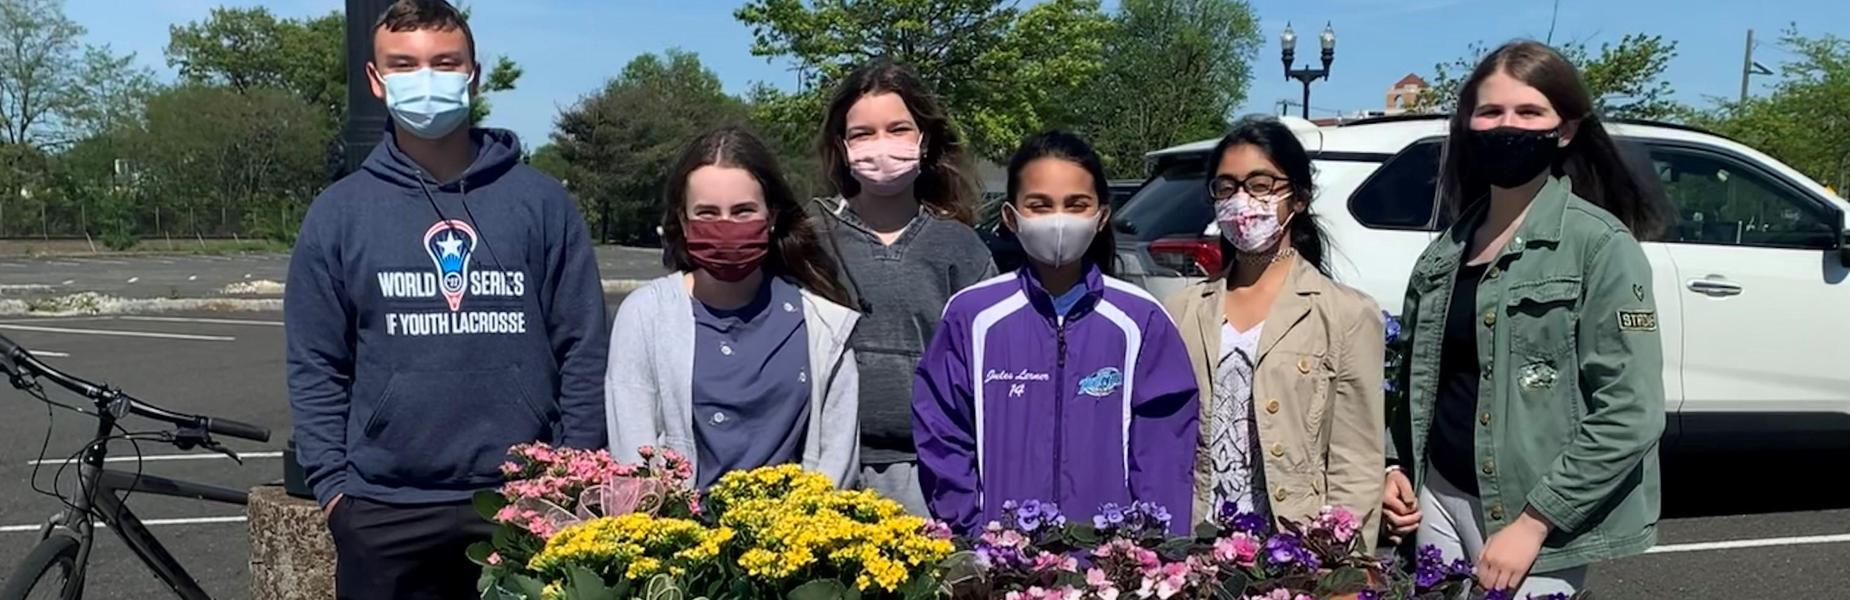 Photo of members of Roosevelt Student Council in front of flowering plants as part of fundraiser.